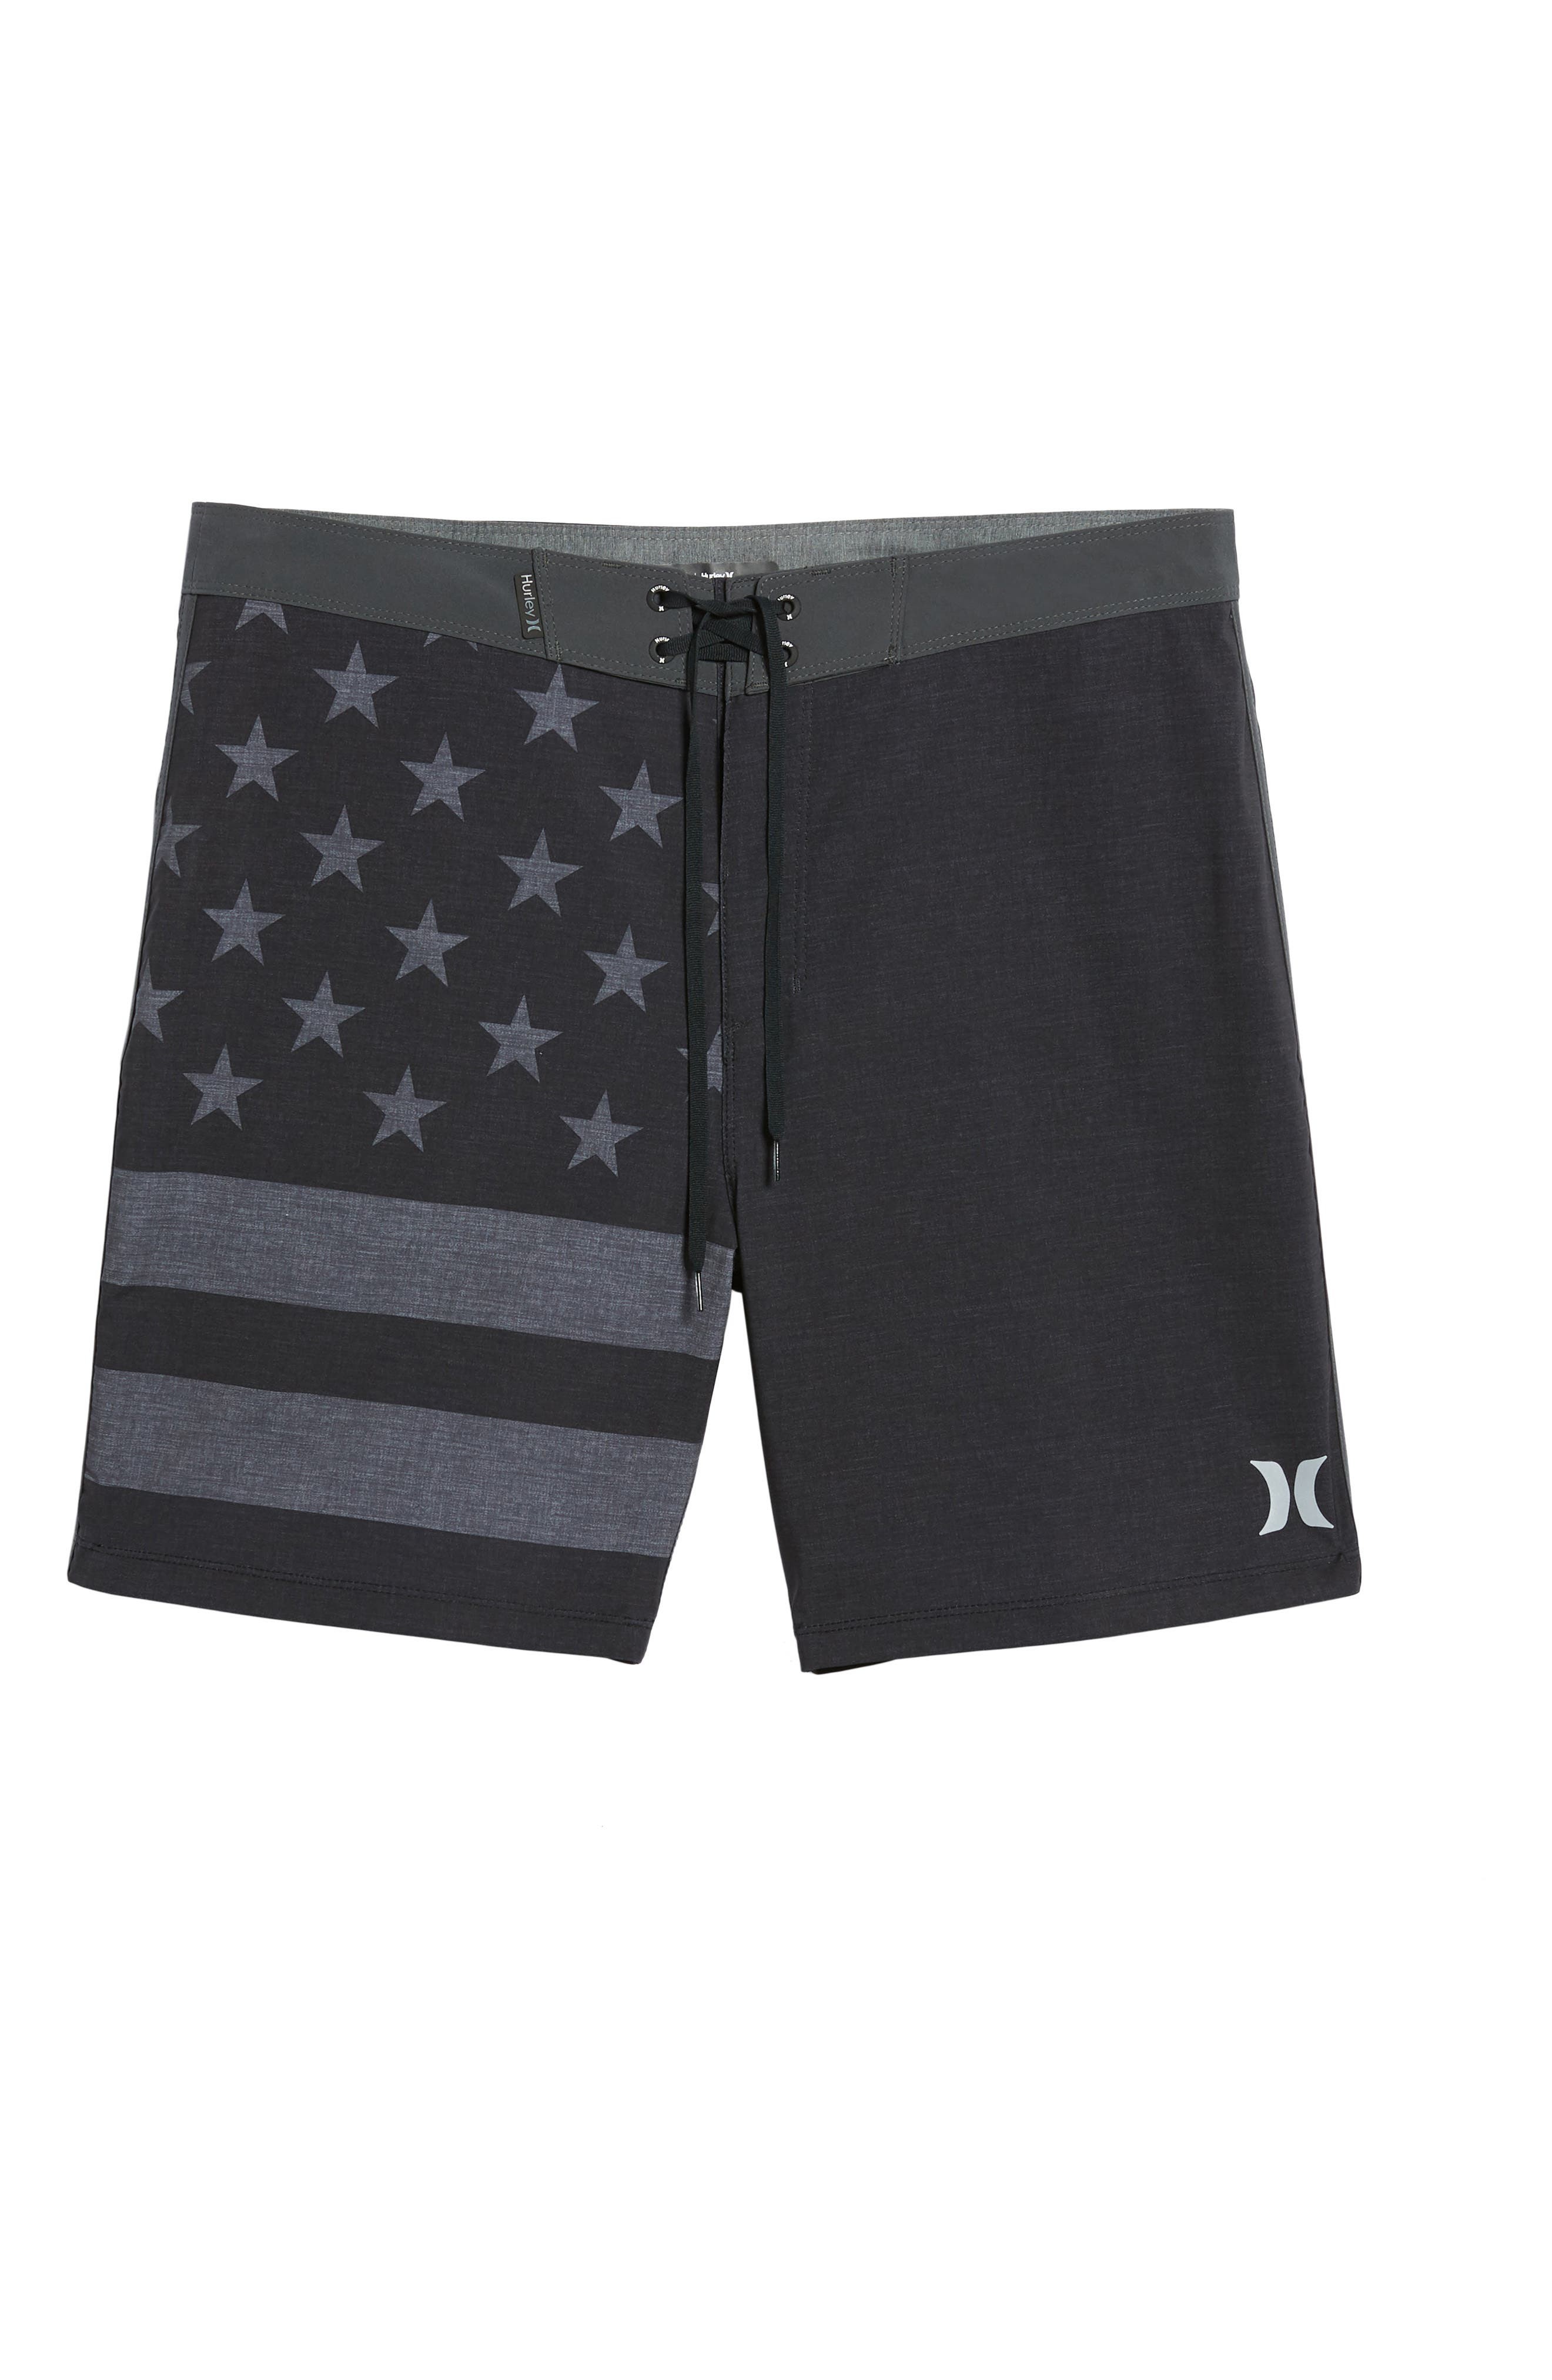 Phantom Cheers Board Shorts,                             Alternate thumbnail 6, color,                             Black